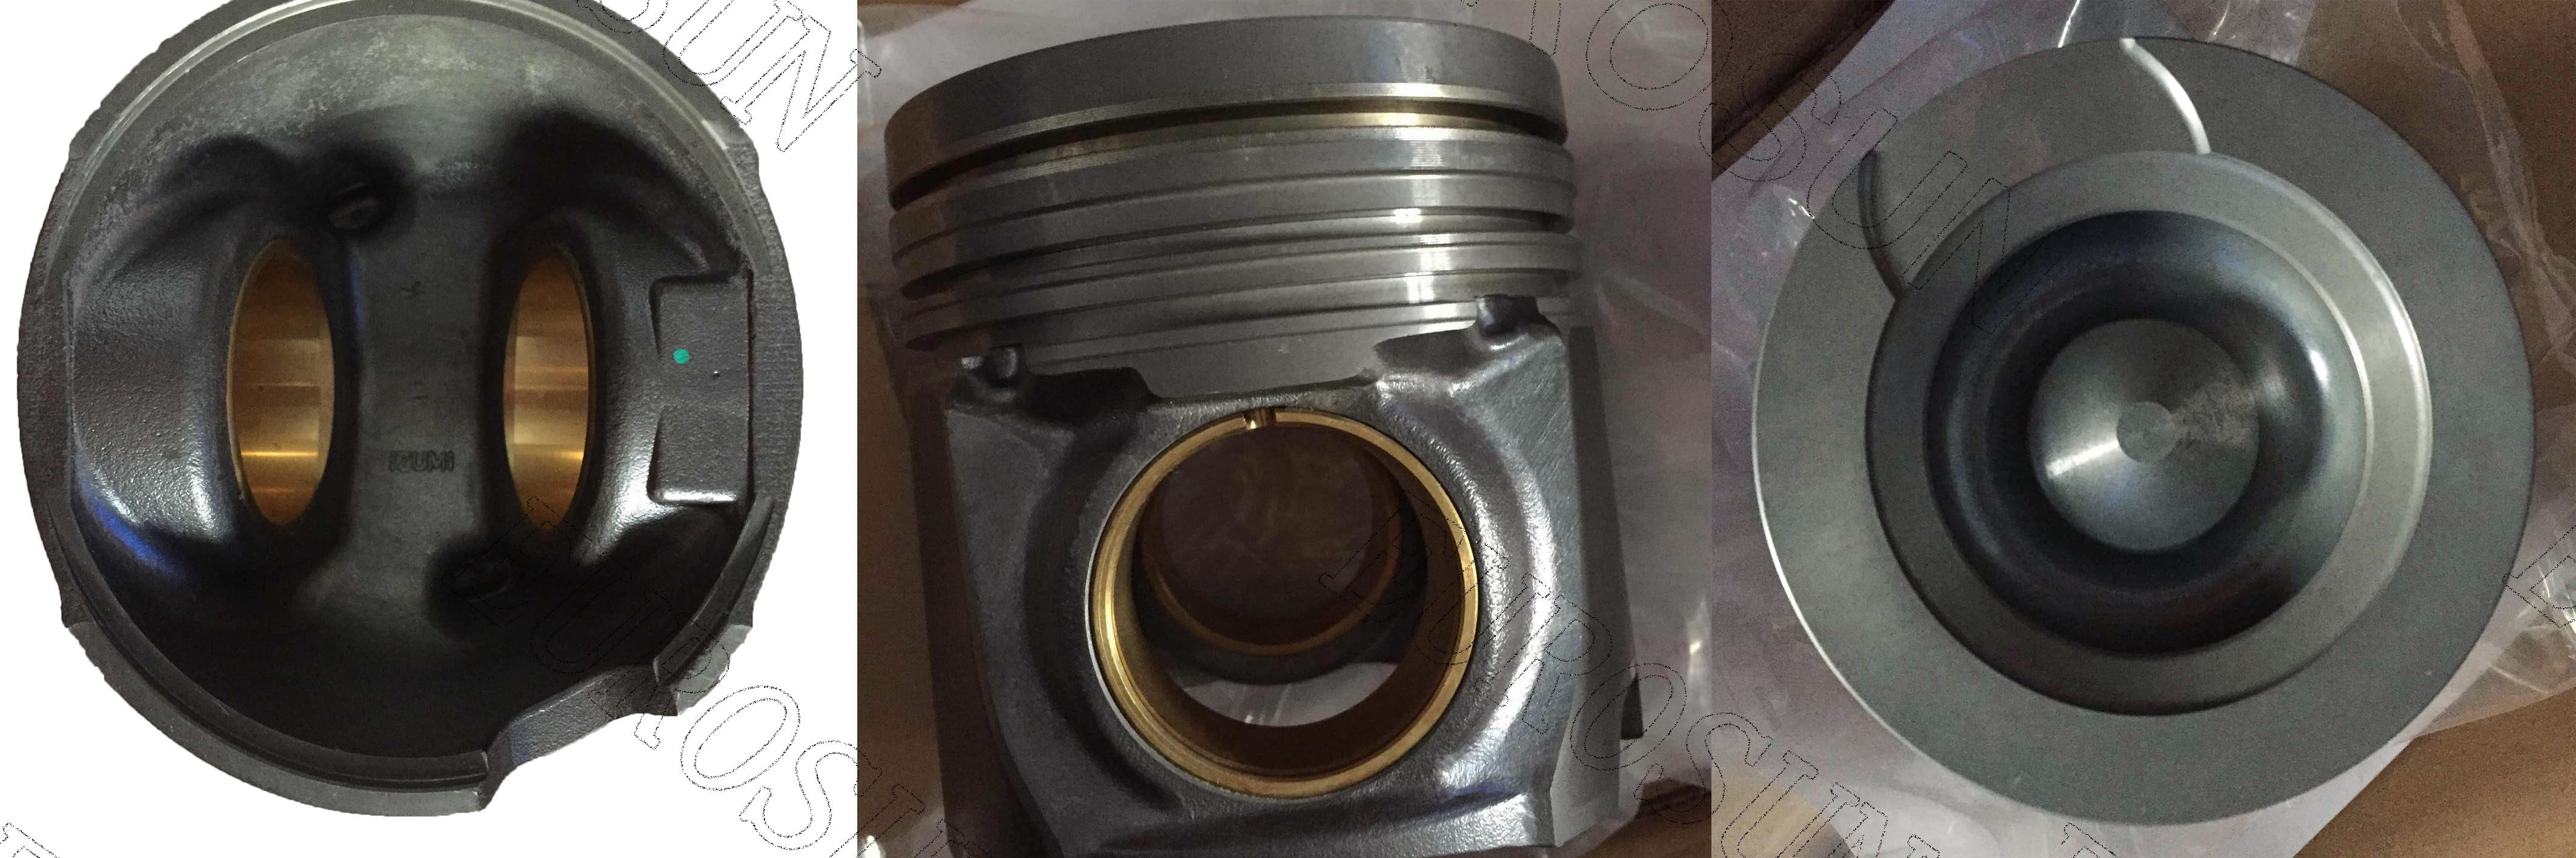 Cummins engine piston 6CT with pin and clips